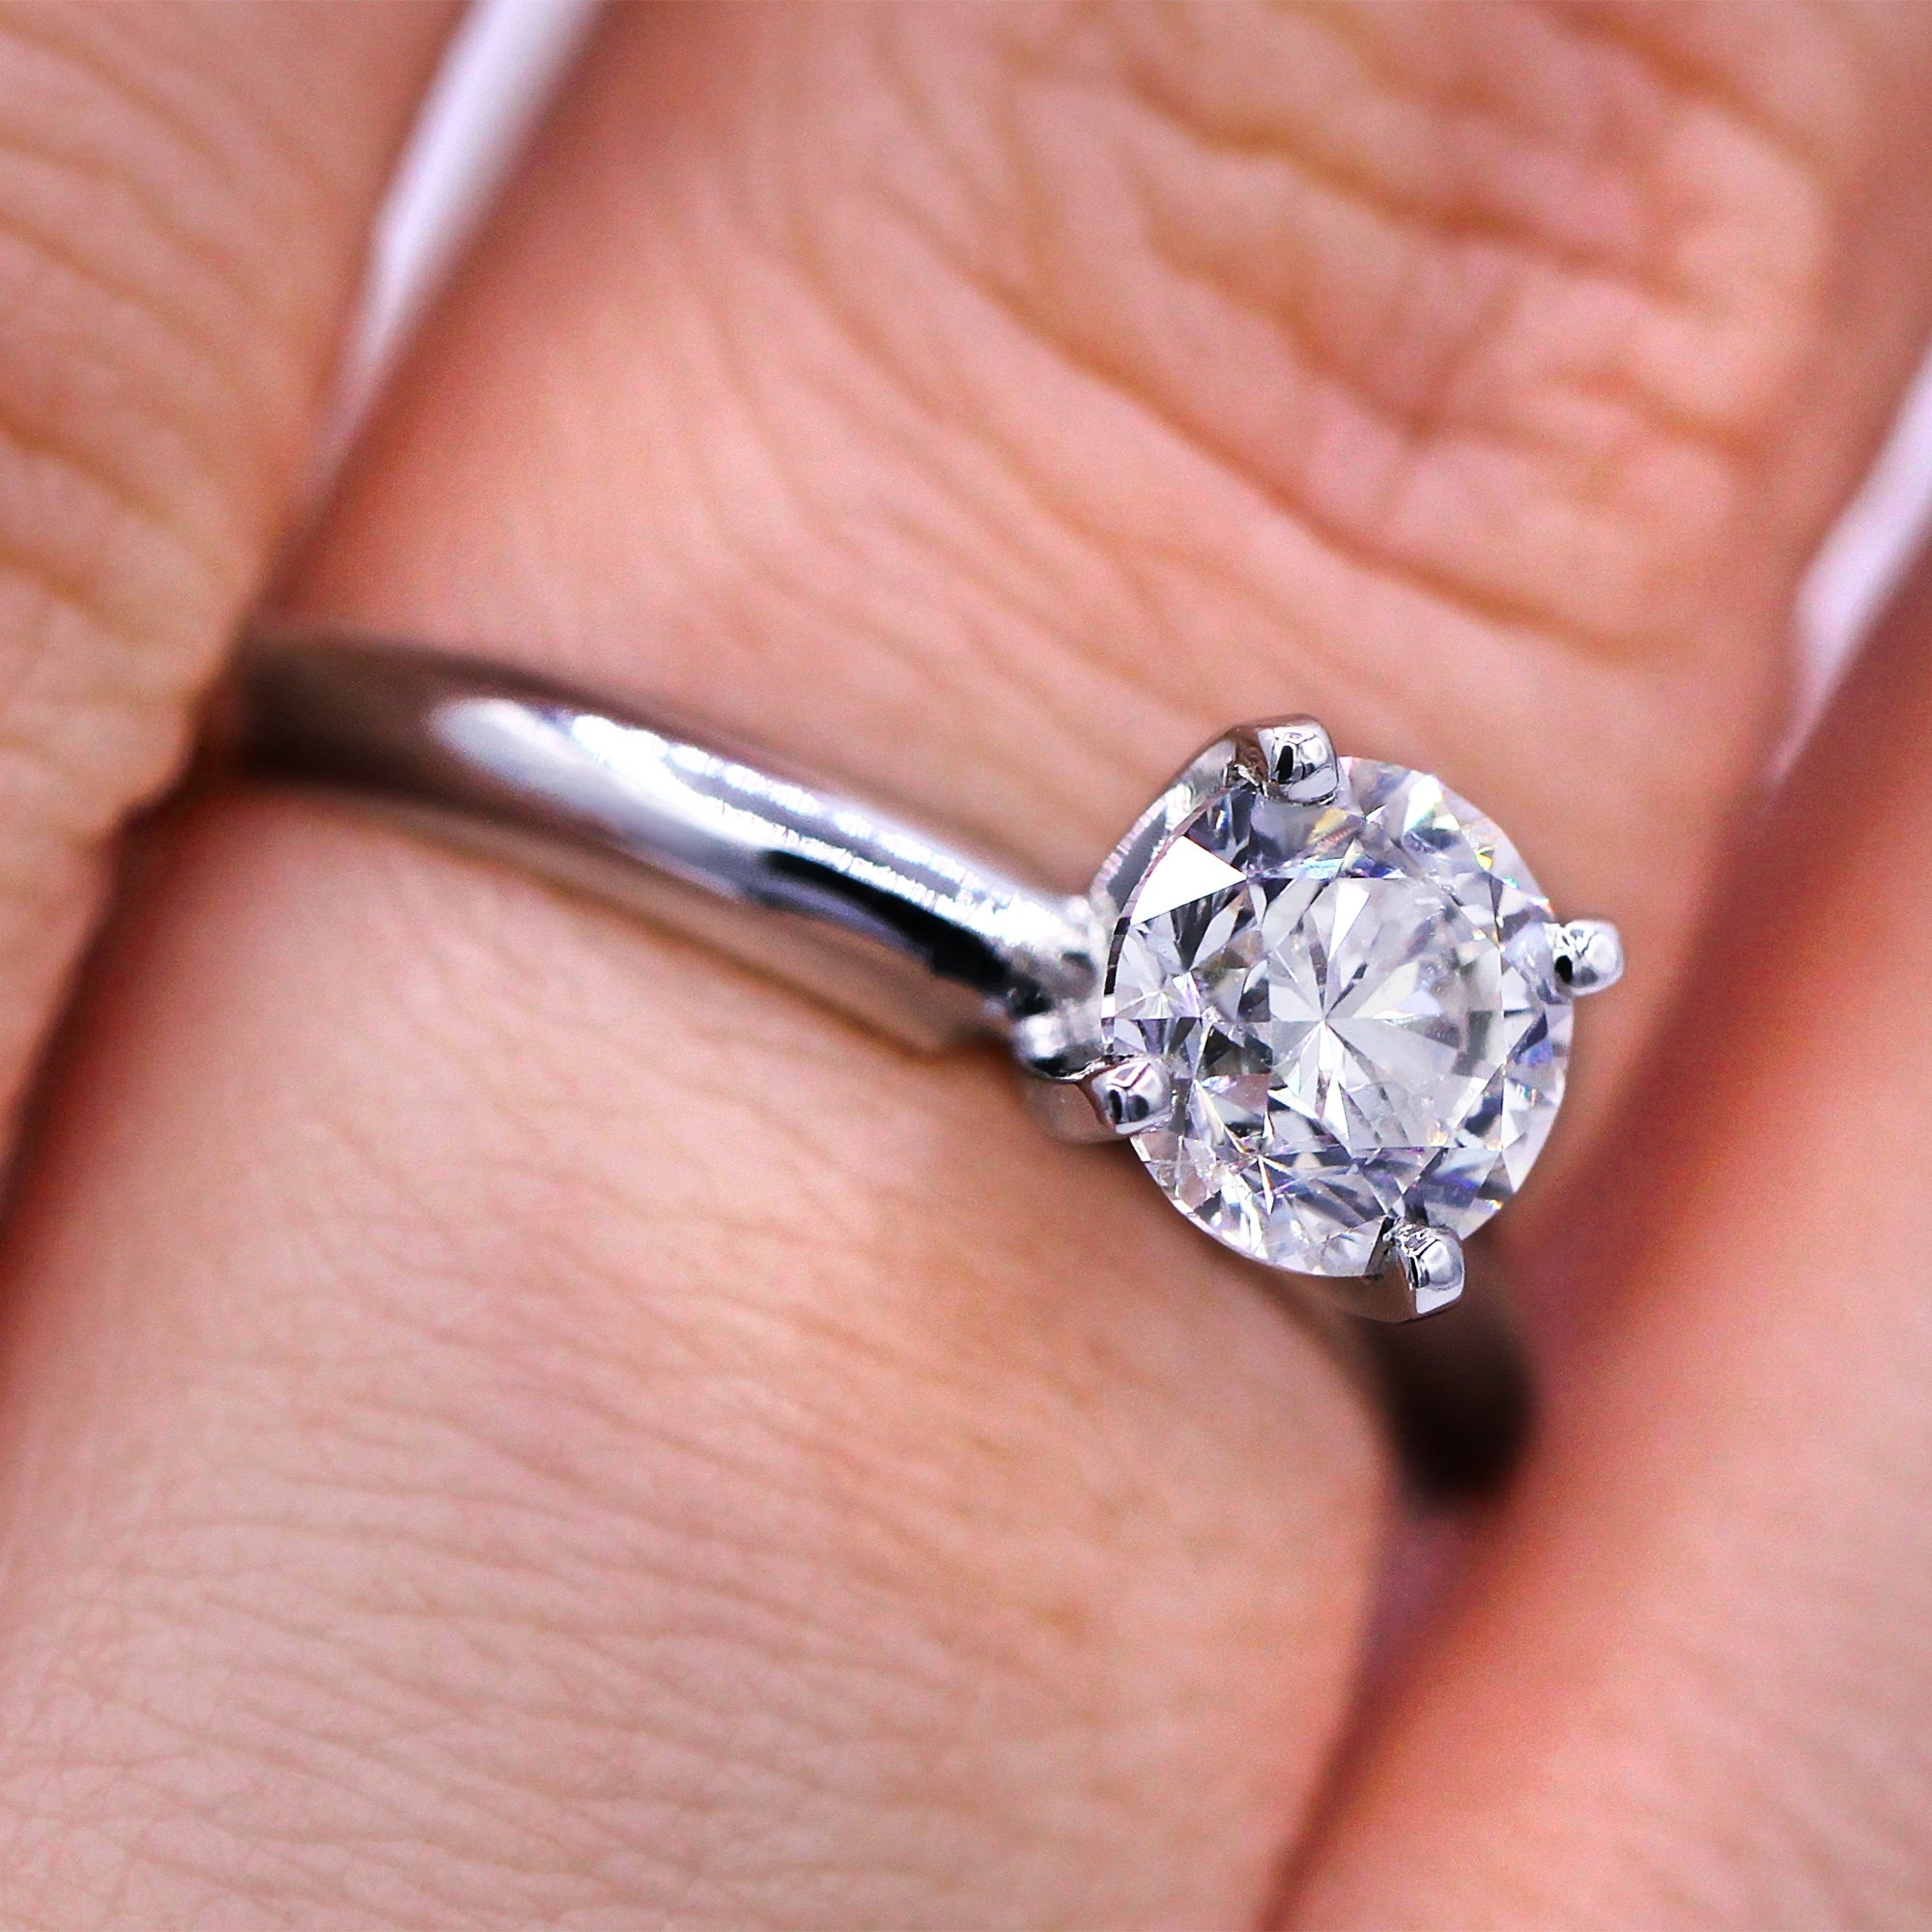 Shop 14KT White Gold 1.02 Ct Solitaire Round Diamond Engagement Ring ...